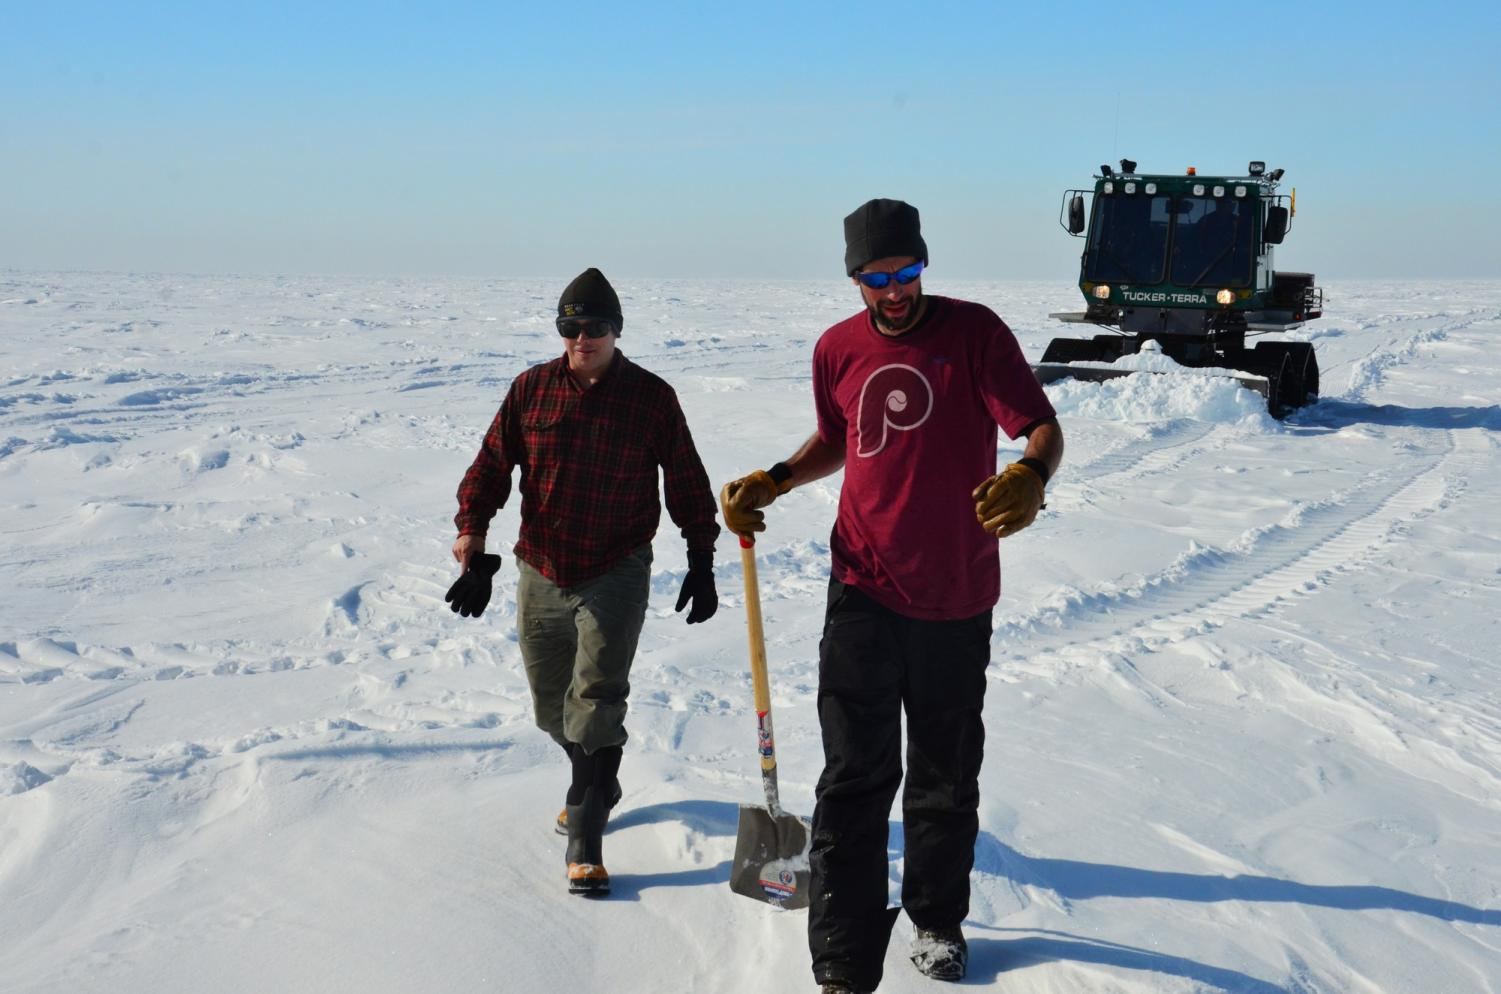 Loyola science professor Philip Bucolo conducts research in Antartica at Palmer Station. Bucolo's studies include aquatic community ecology. Courtesy of Philip Bucolo.